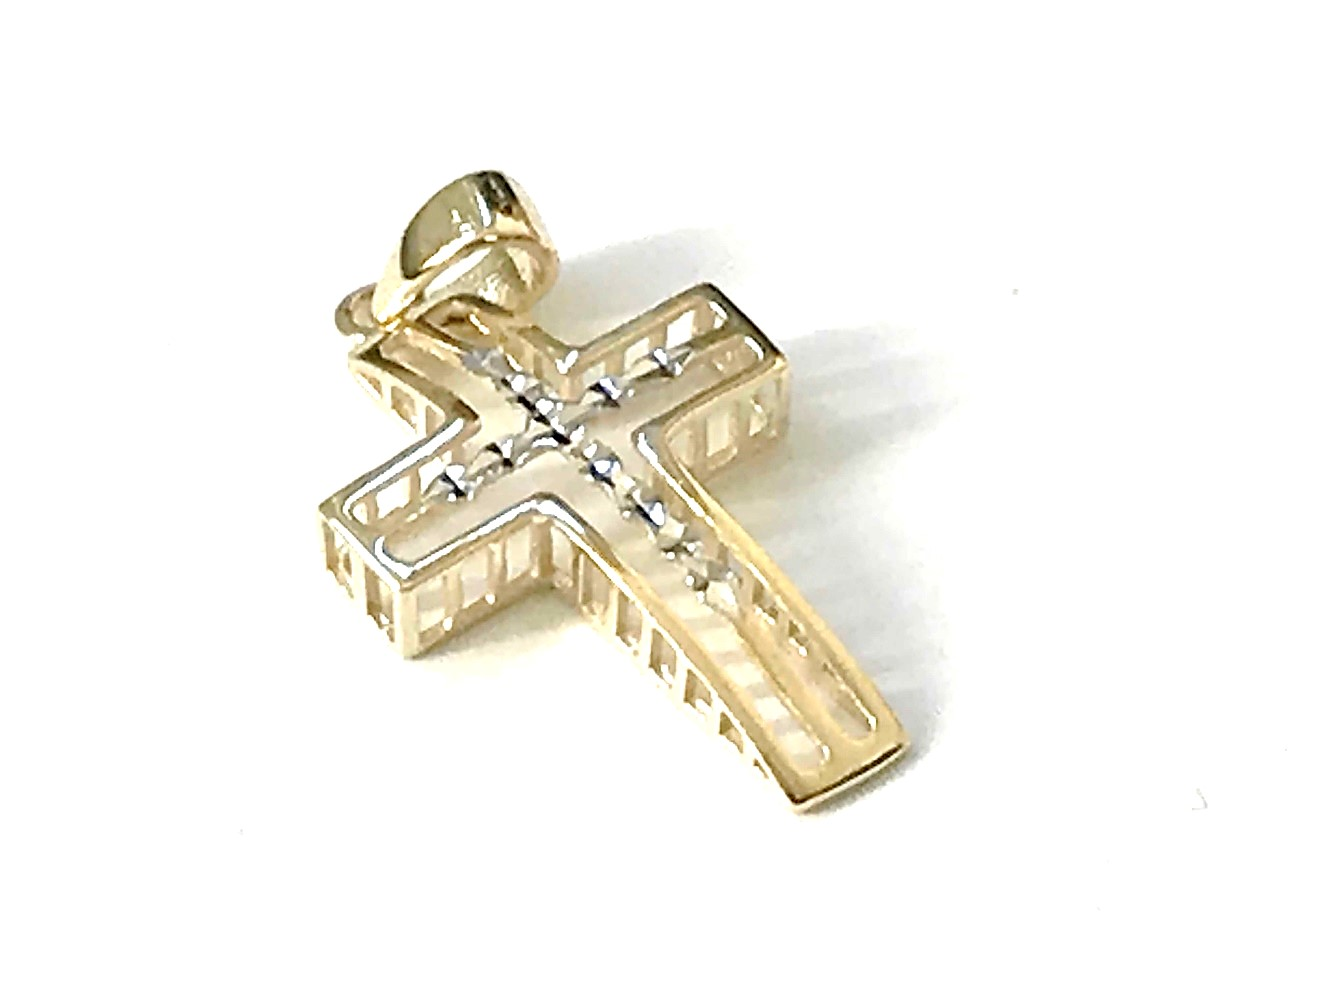 Cross pendant for woman - 10K 2 tone gold